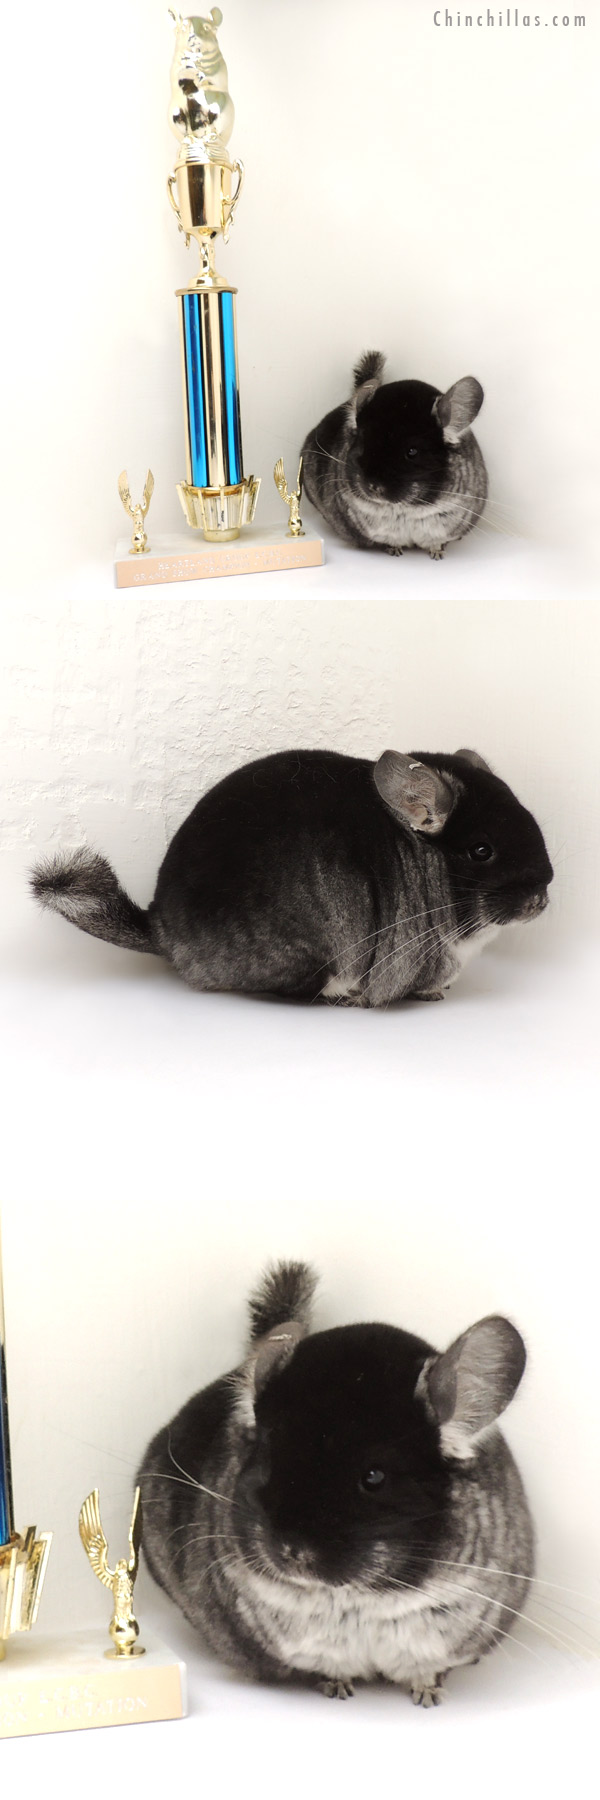 13342 Grand Show Champion Black Velvet Female Chinchilla